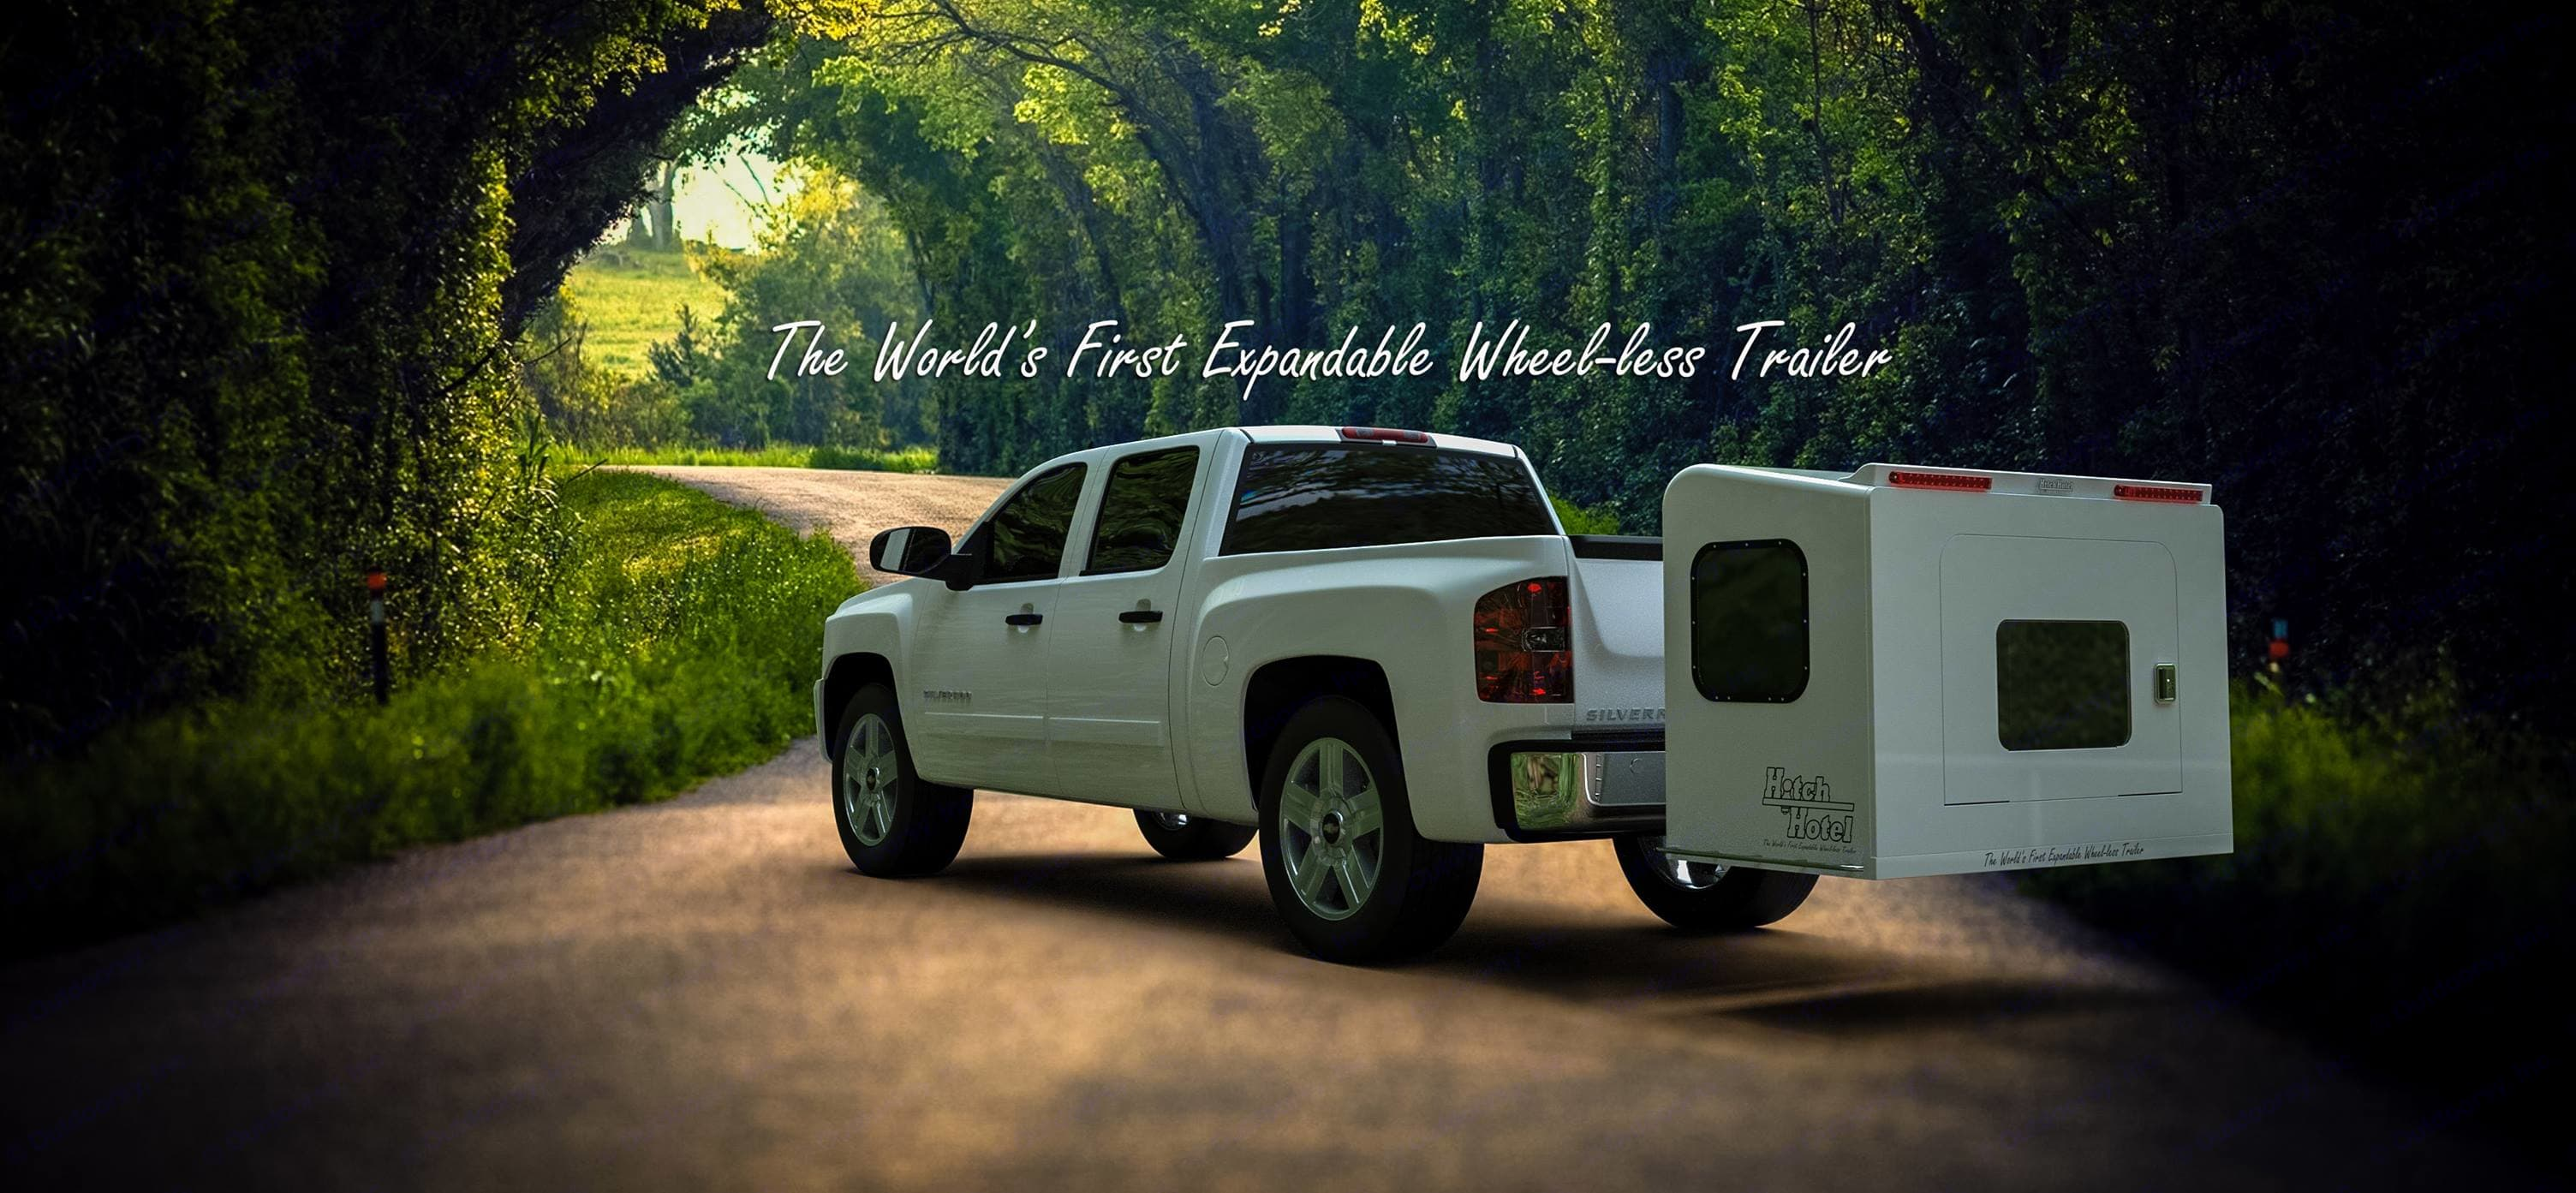 Hitch Hotel Expandable Wheel Less Trailer 2019